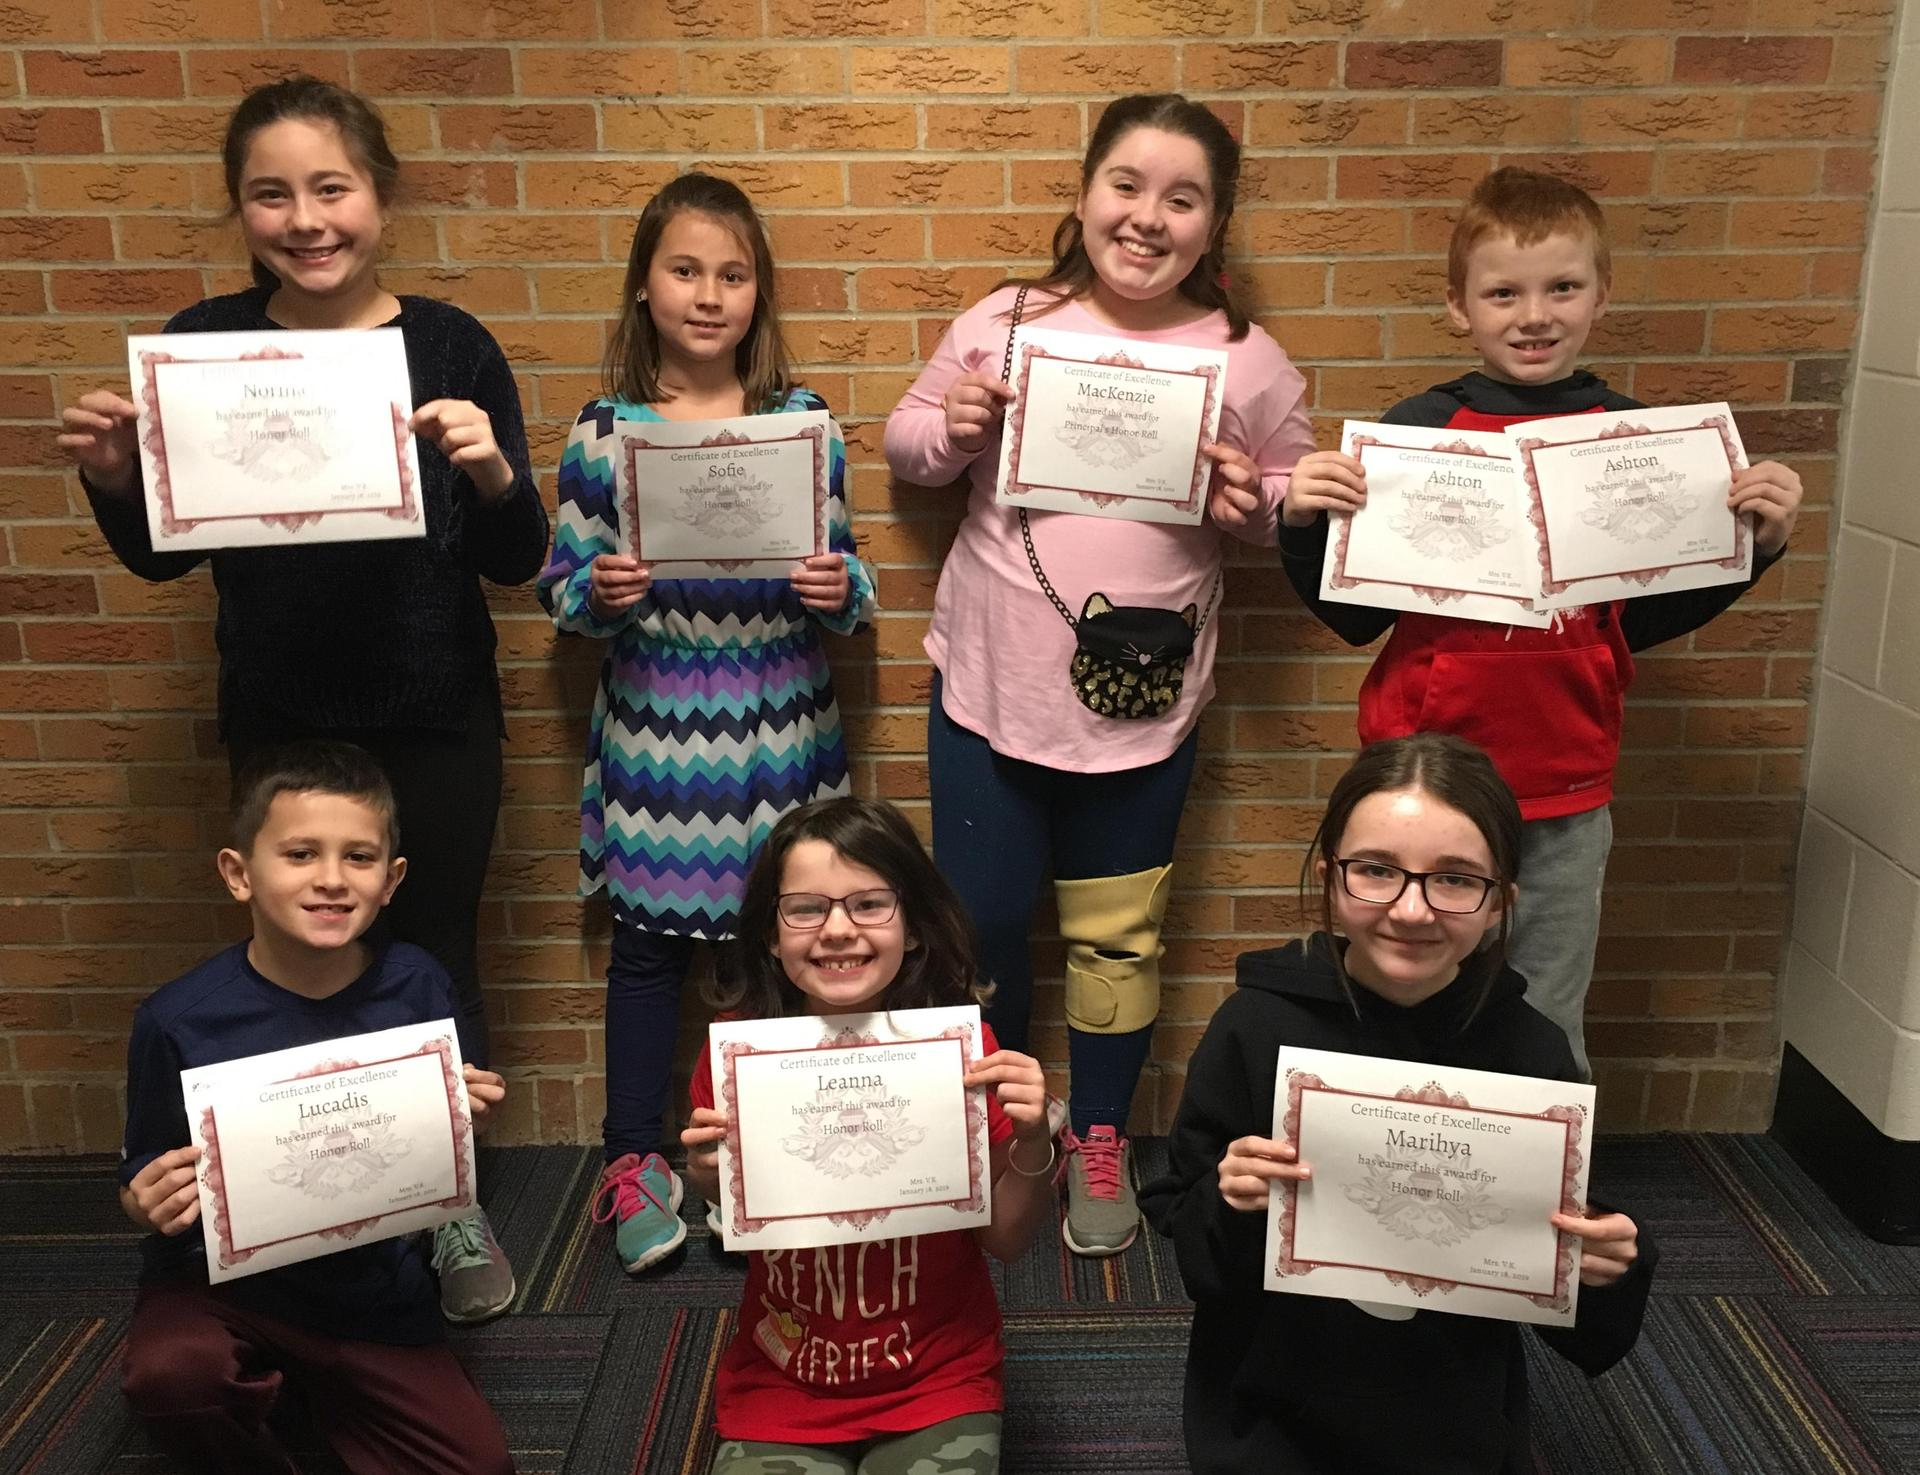 7 students with awards